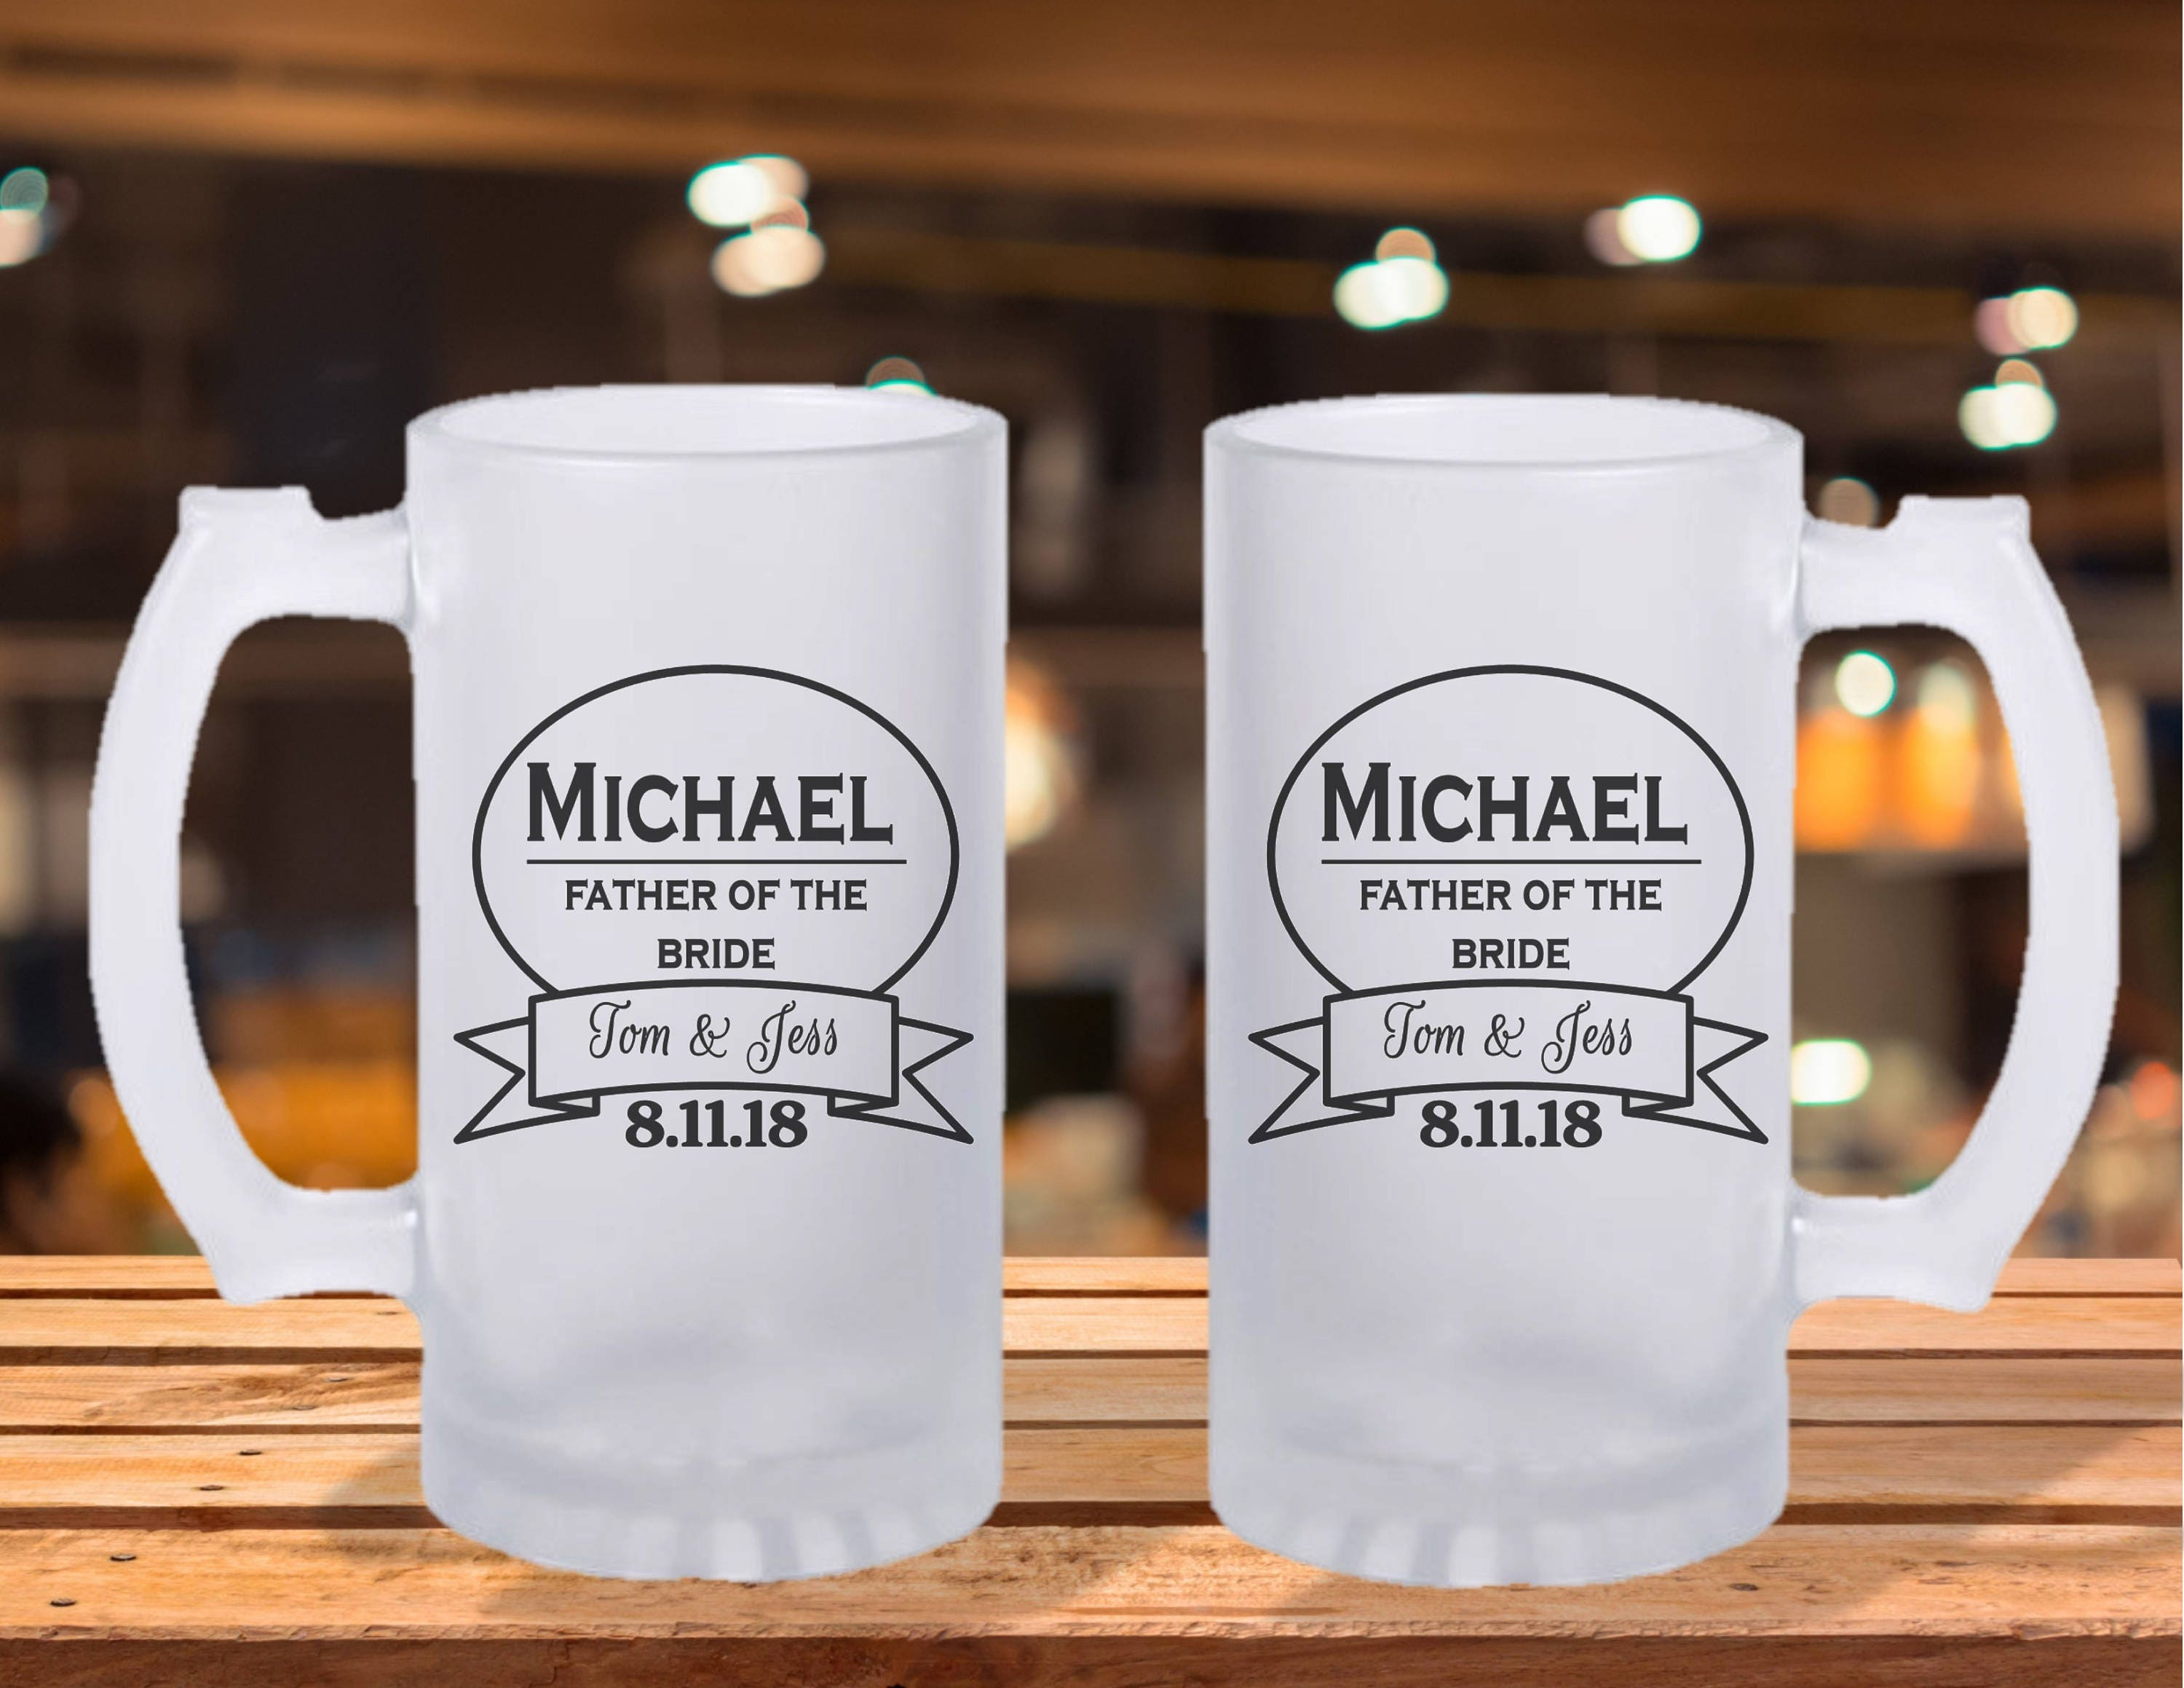 Frosted Stein Mug Groomsman Gift Ideas Brides Father Beer Of The Bride Wedding Idea Groomsmen